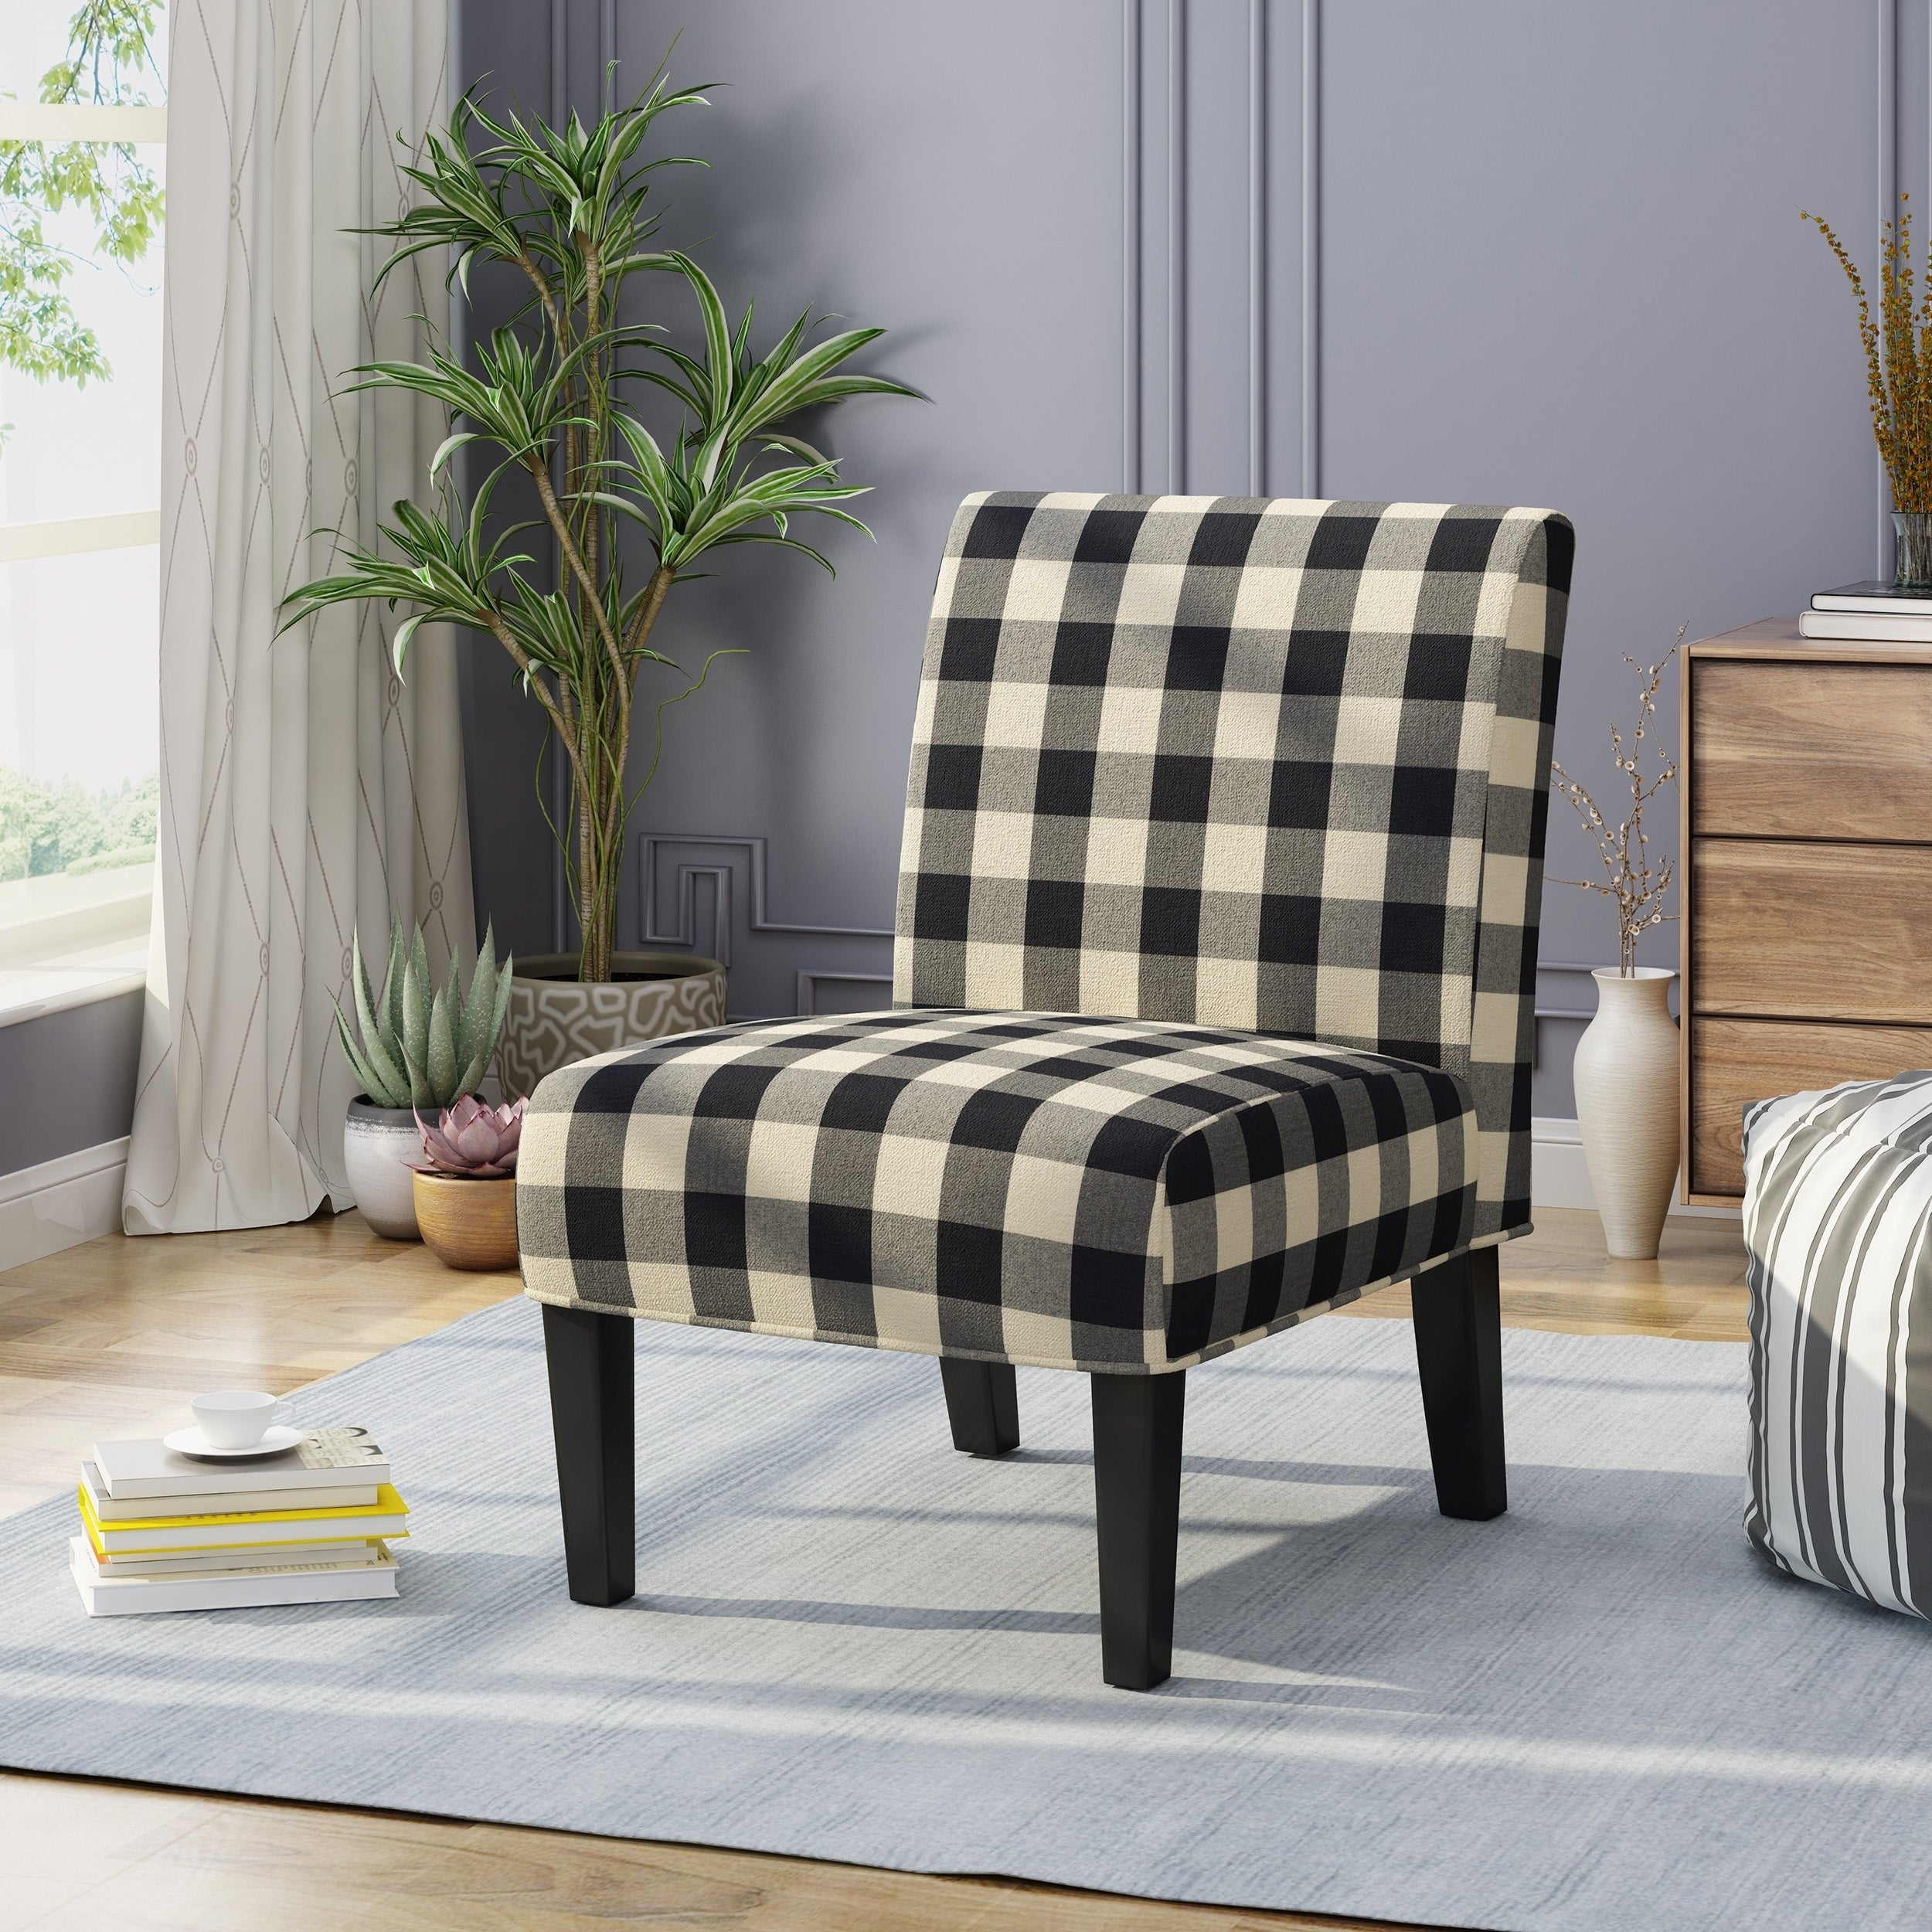 Buy plaid living room chairs online at overstock our best living room furniture deals